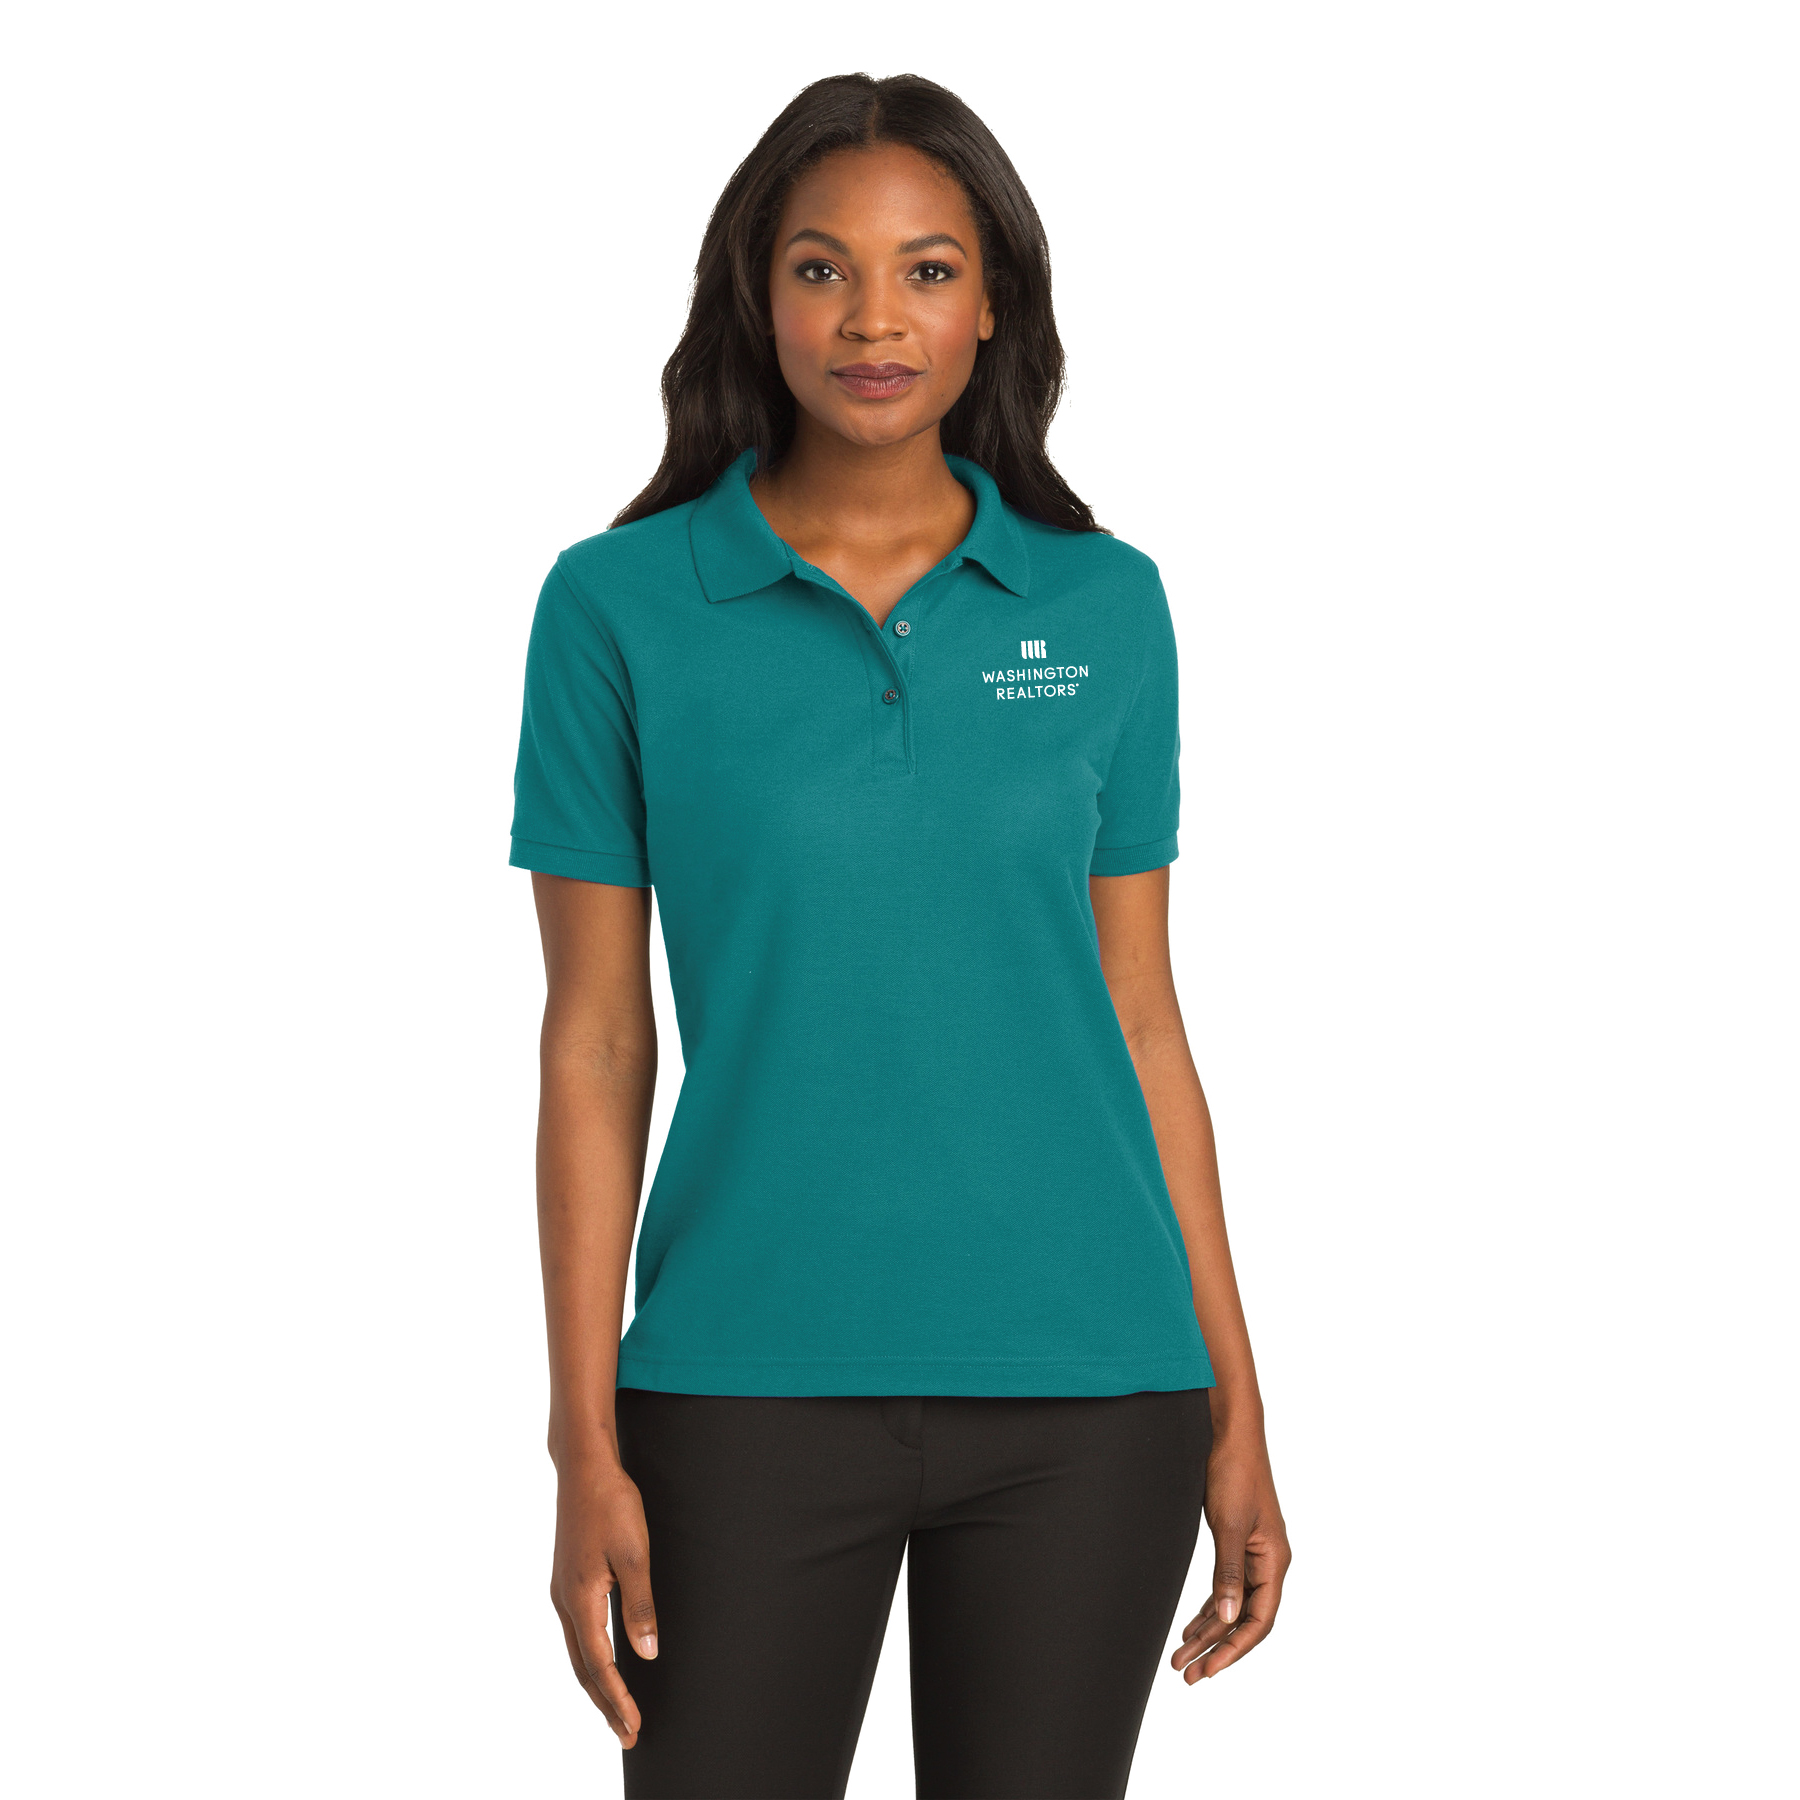 Washington REALTORS® Ladies Pique Polo Shirt - TCL4108WA